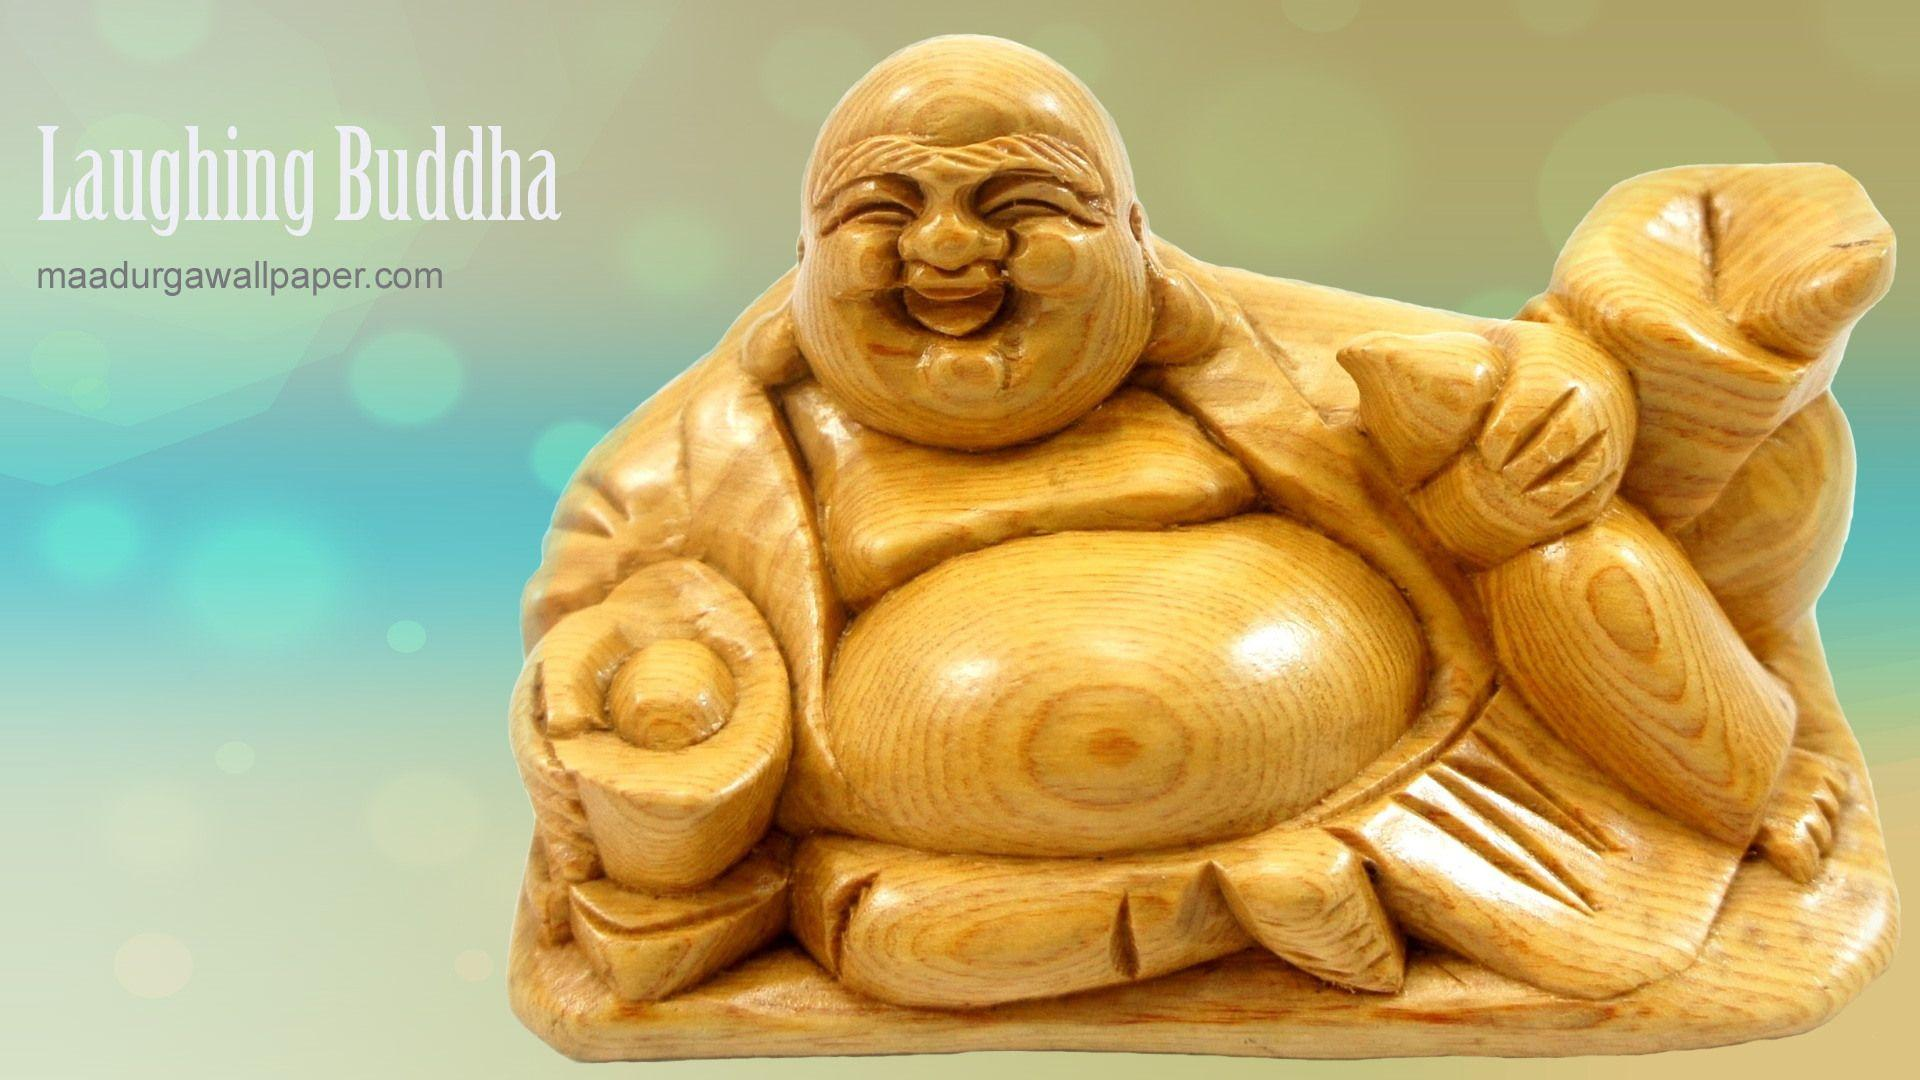 Laughing Buddha Wallpapers For Mobile Wallpaper Cave